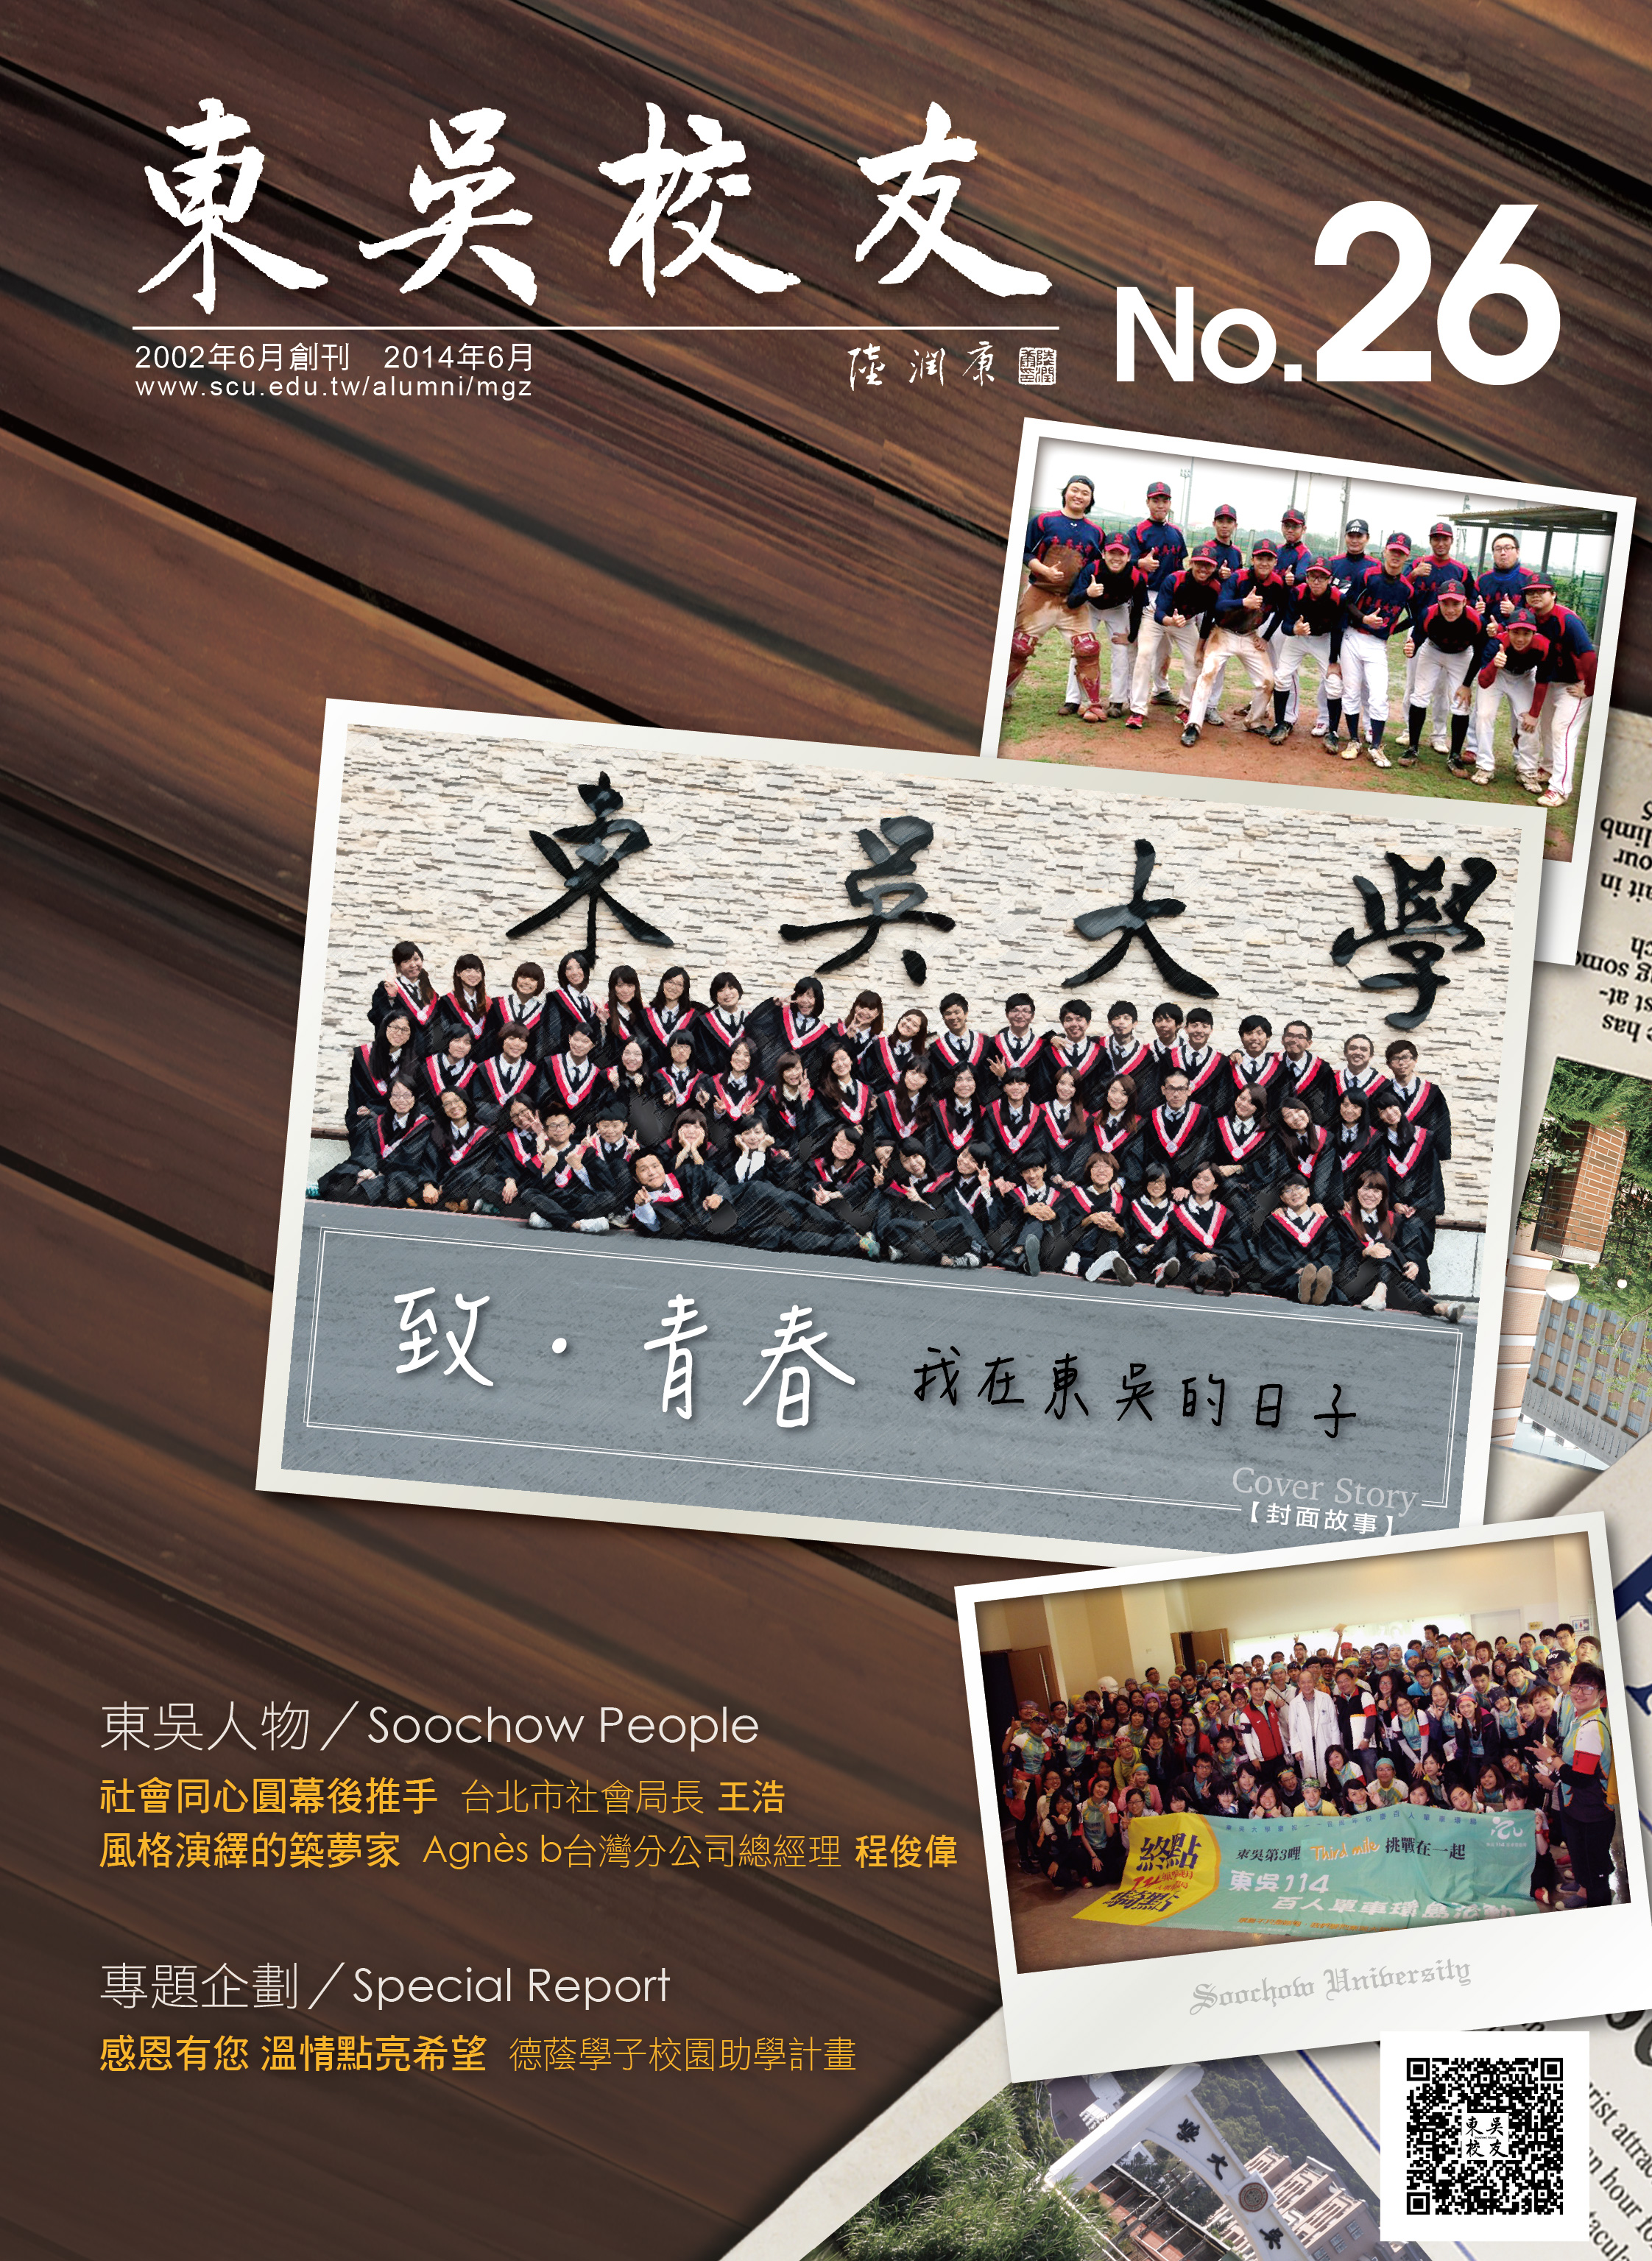 Link to Alumni Magazine NO.26 (mgz26.pdf)